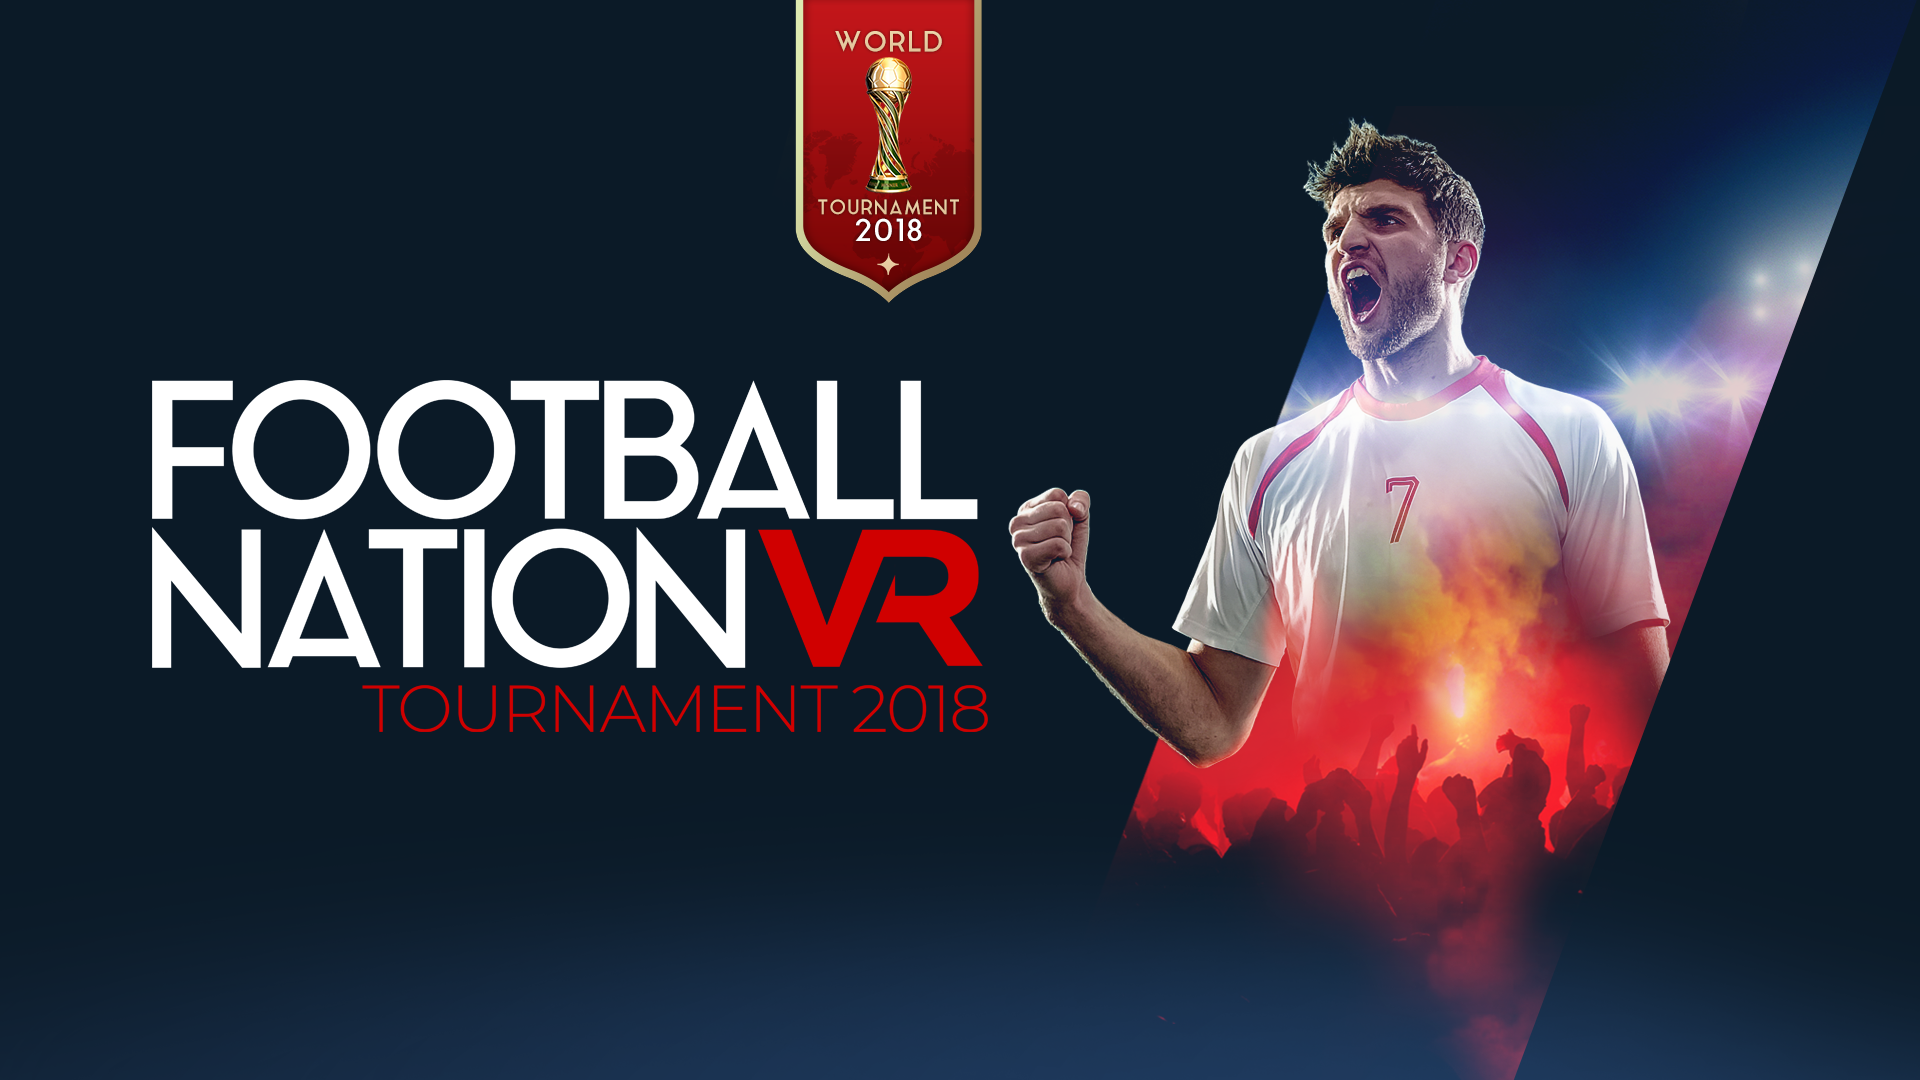 IS FOOTBALL COMING HOME - ENGLAND HOLDING THEIR LEAD IN THE WORLDS FIRST INTERNATIONAL VR FOOTBALL TOURNAMENT